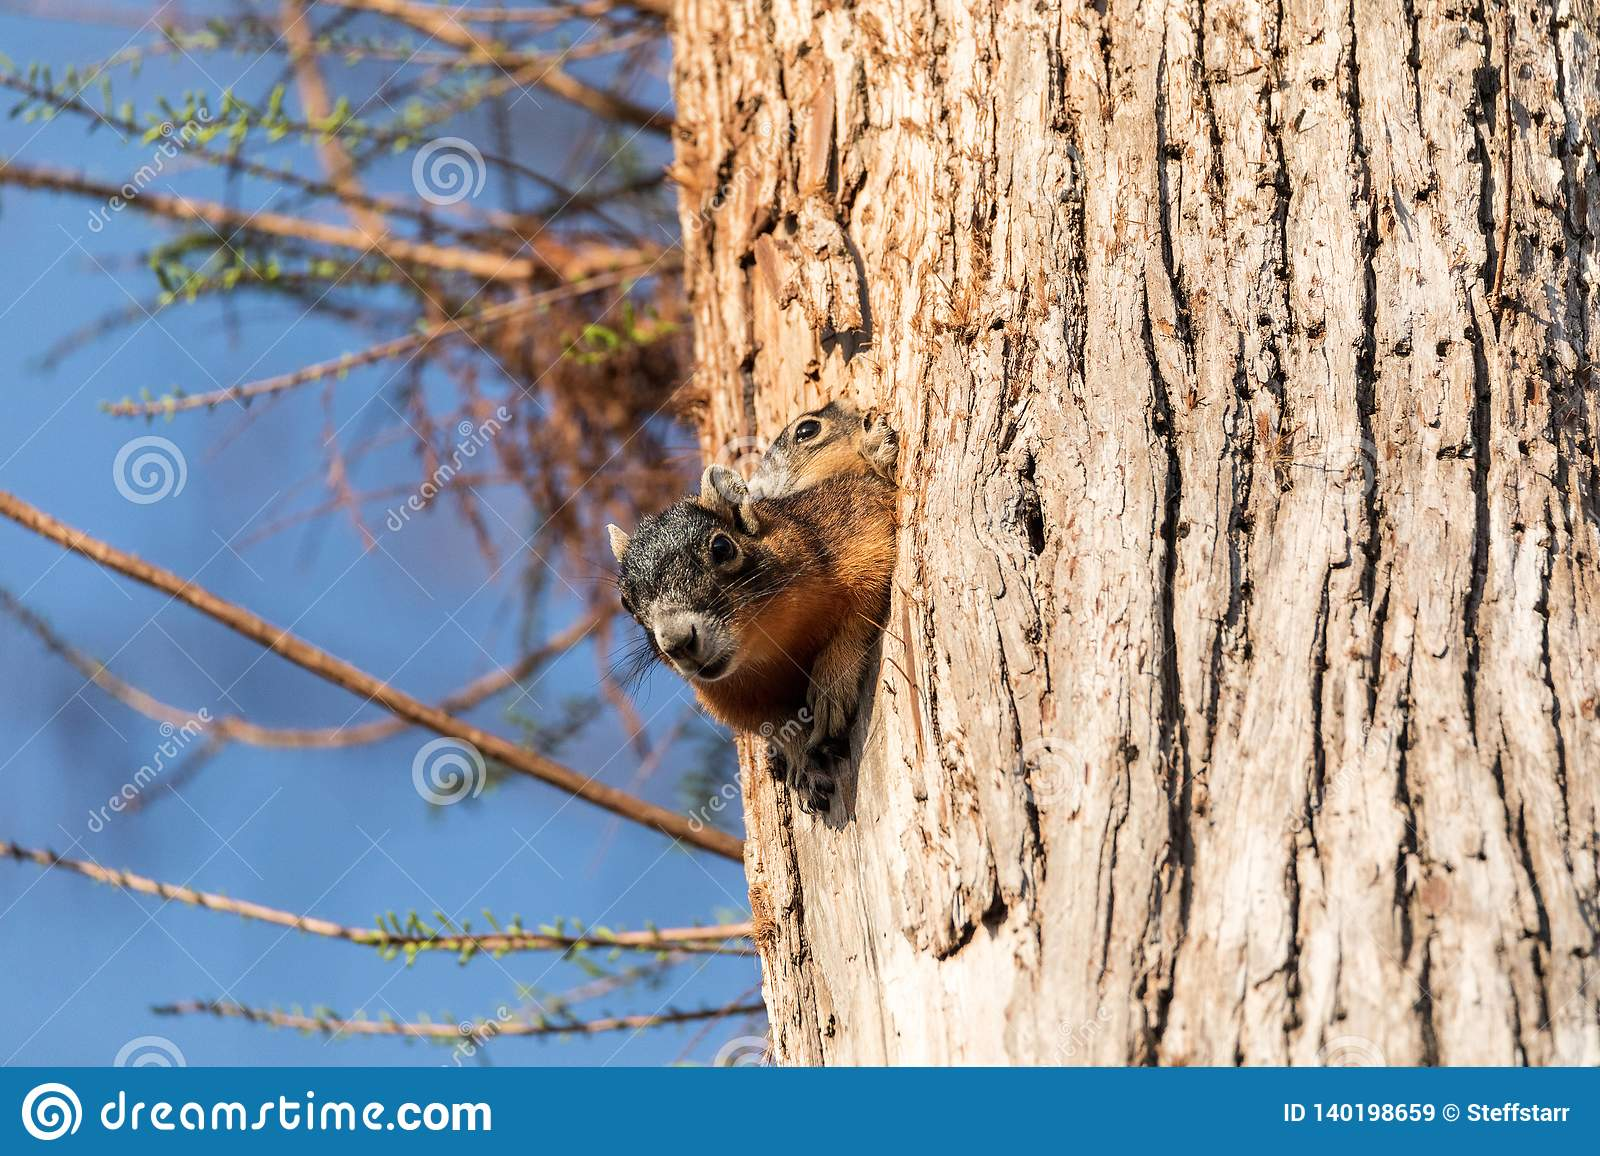 Baby Fox squirrel kit Sciurus niger peers over the top of its mother in the nest